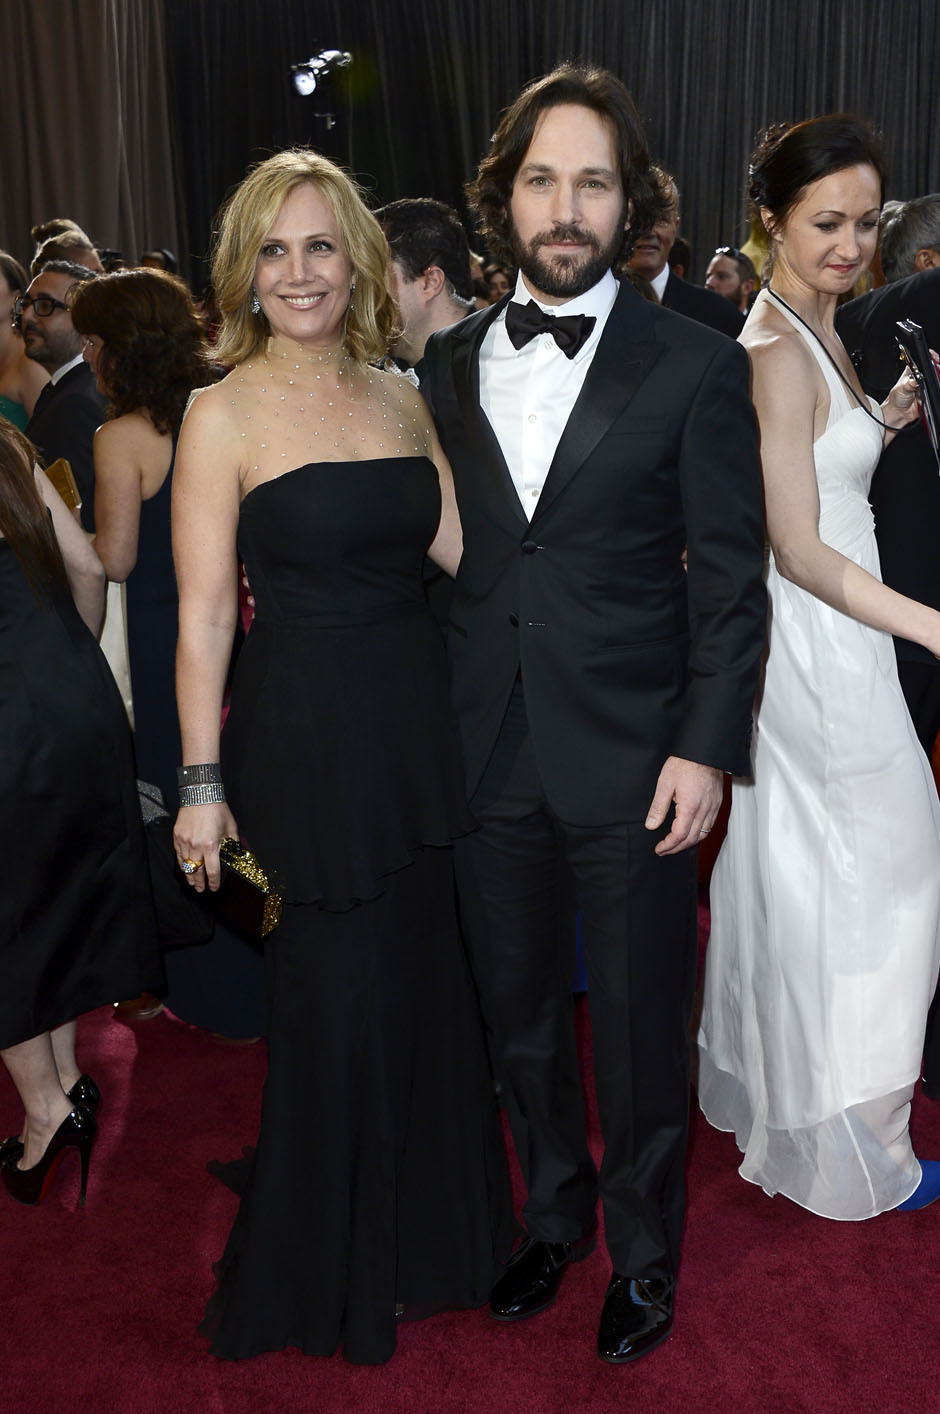 nparts:  Paul Rudd and wife Julie Yaeger arrive at the Oscars. (Photo by Frazer Harrison/Getty Images) More: http://natpo.st/XzvSrs